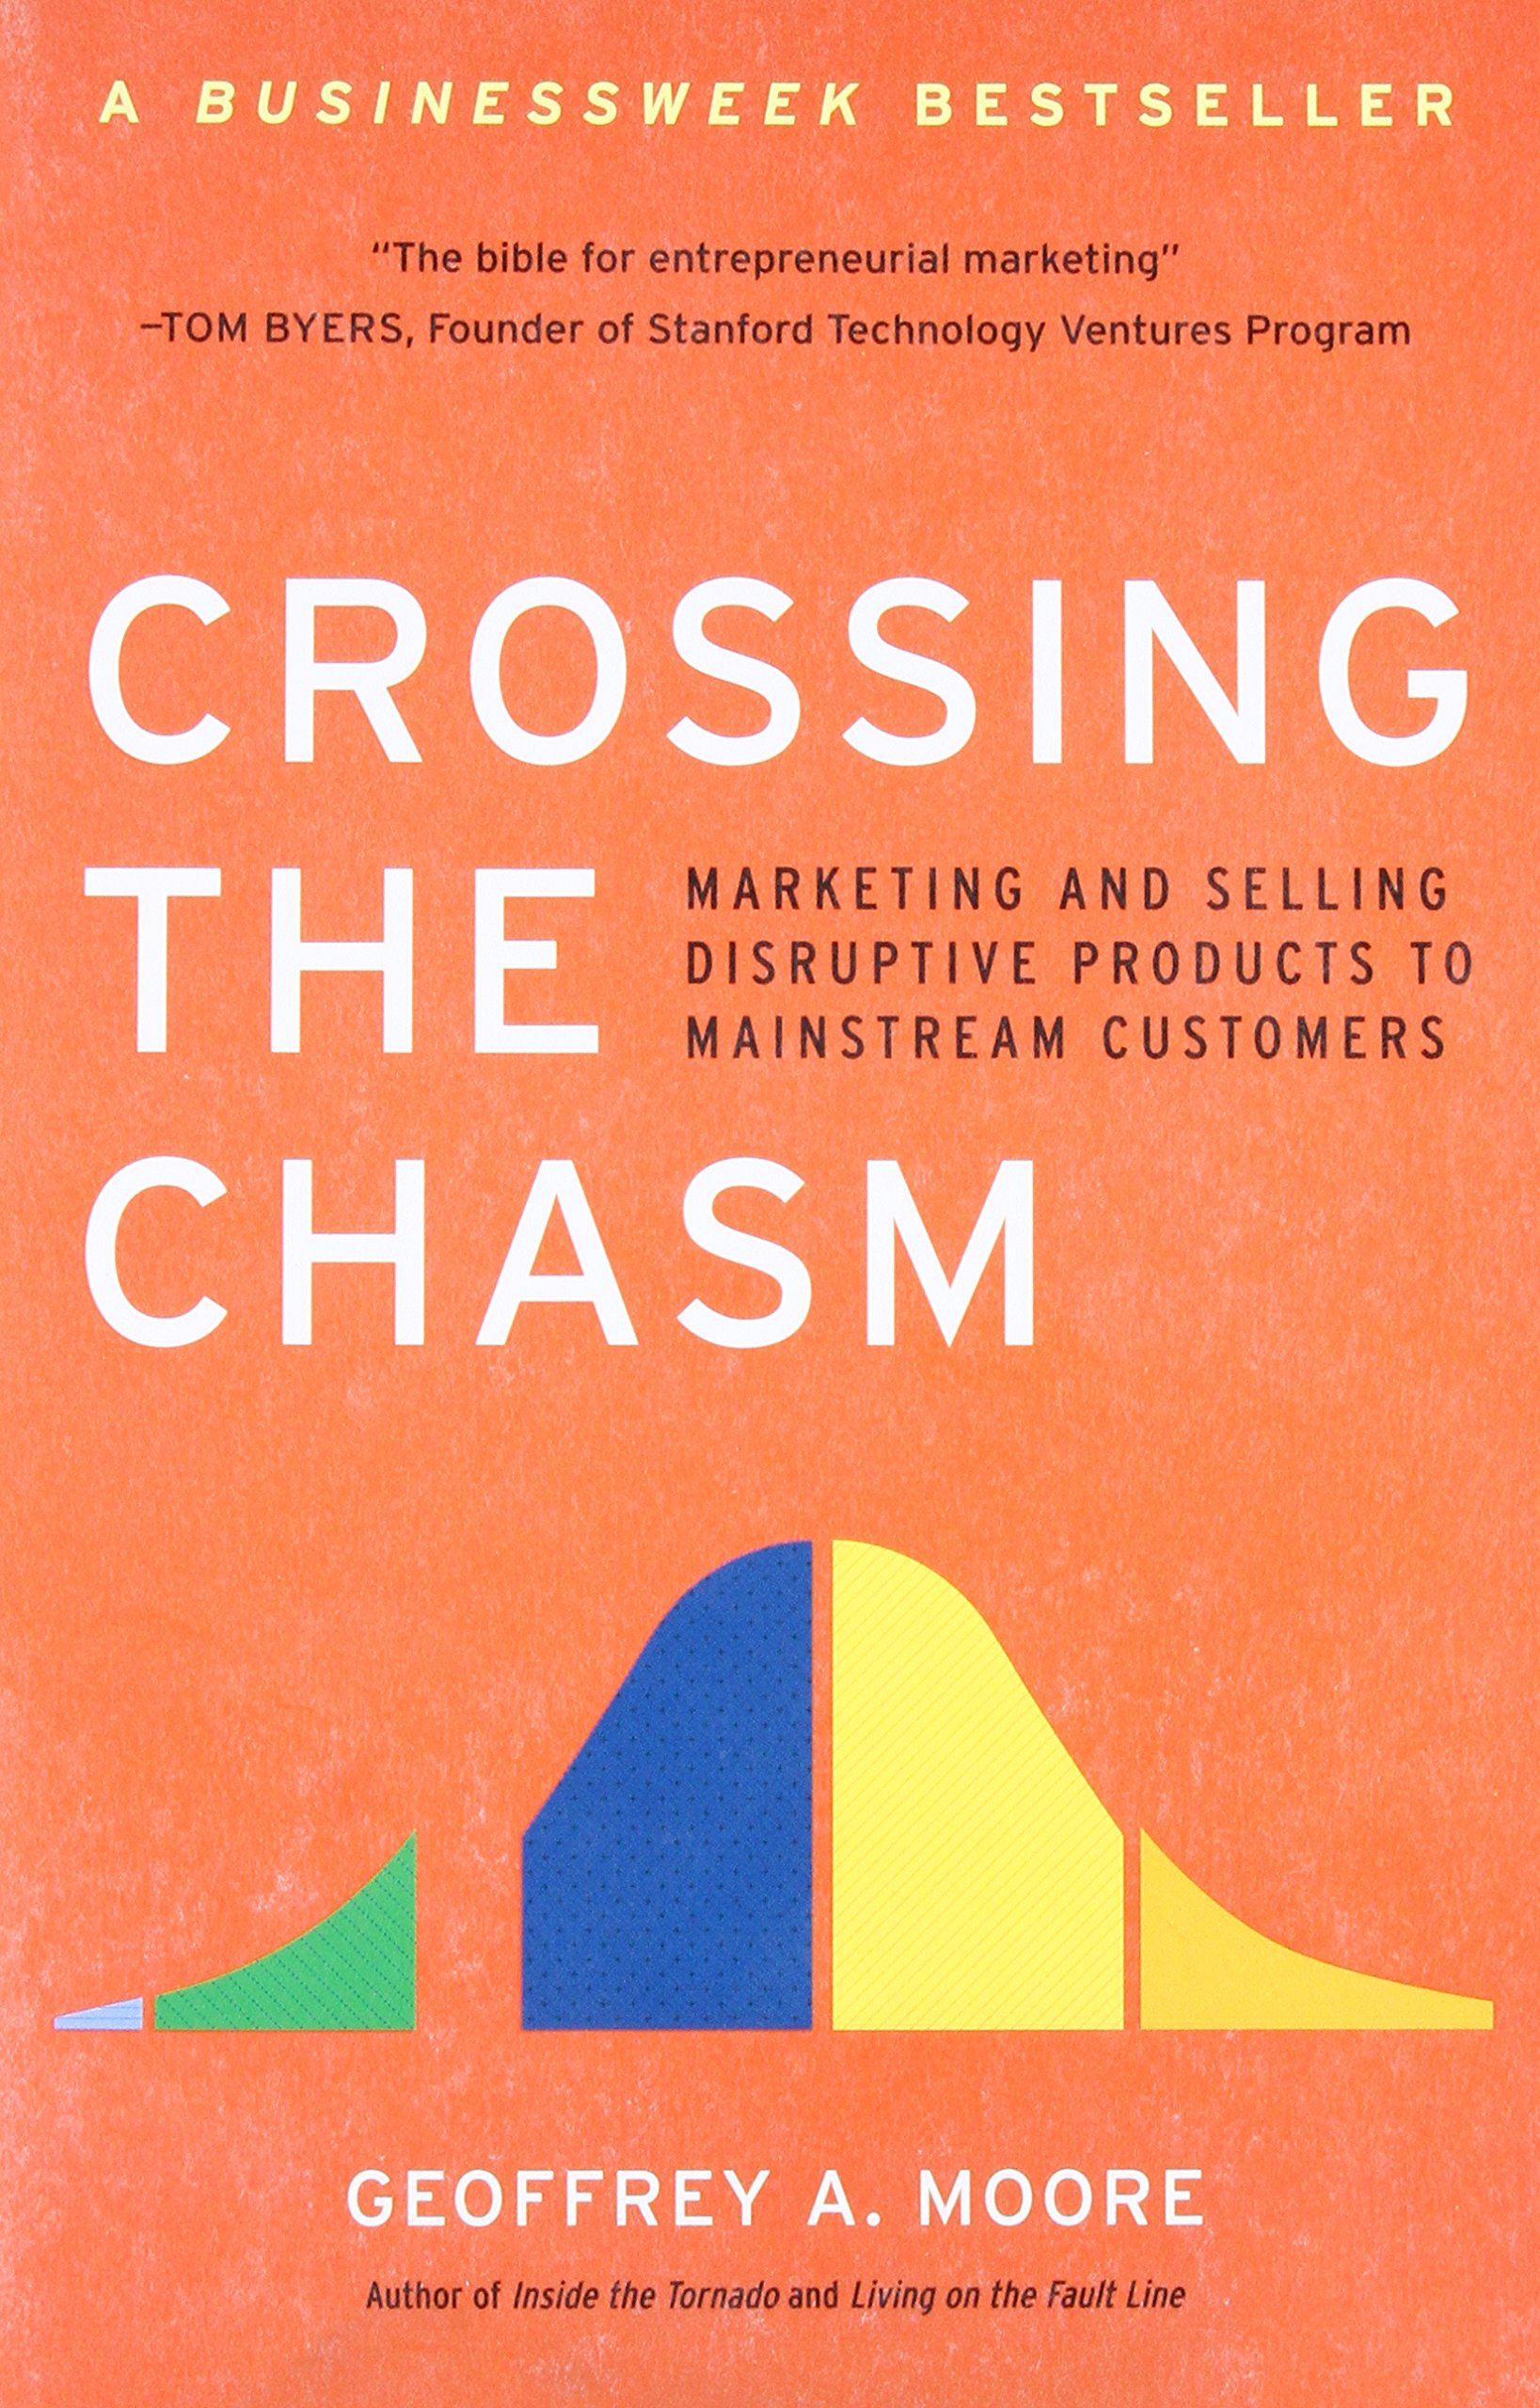 Crossing the Chasm: Marketing and Selling High-Tech Products to Mainstream Customers by Geoffrey A. Moore